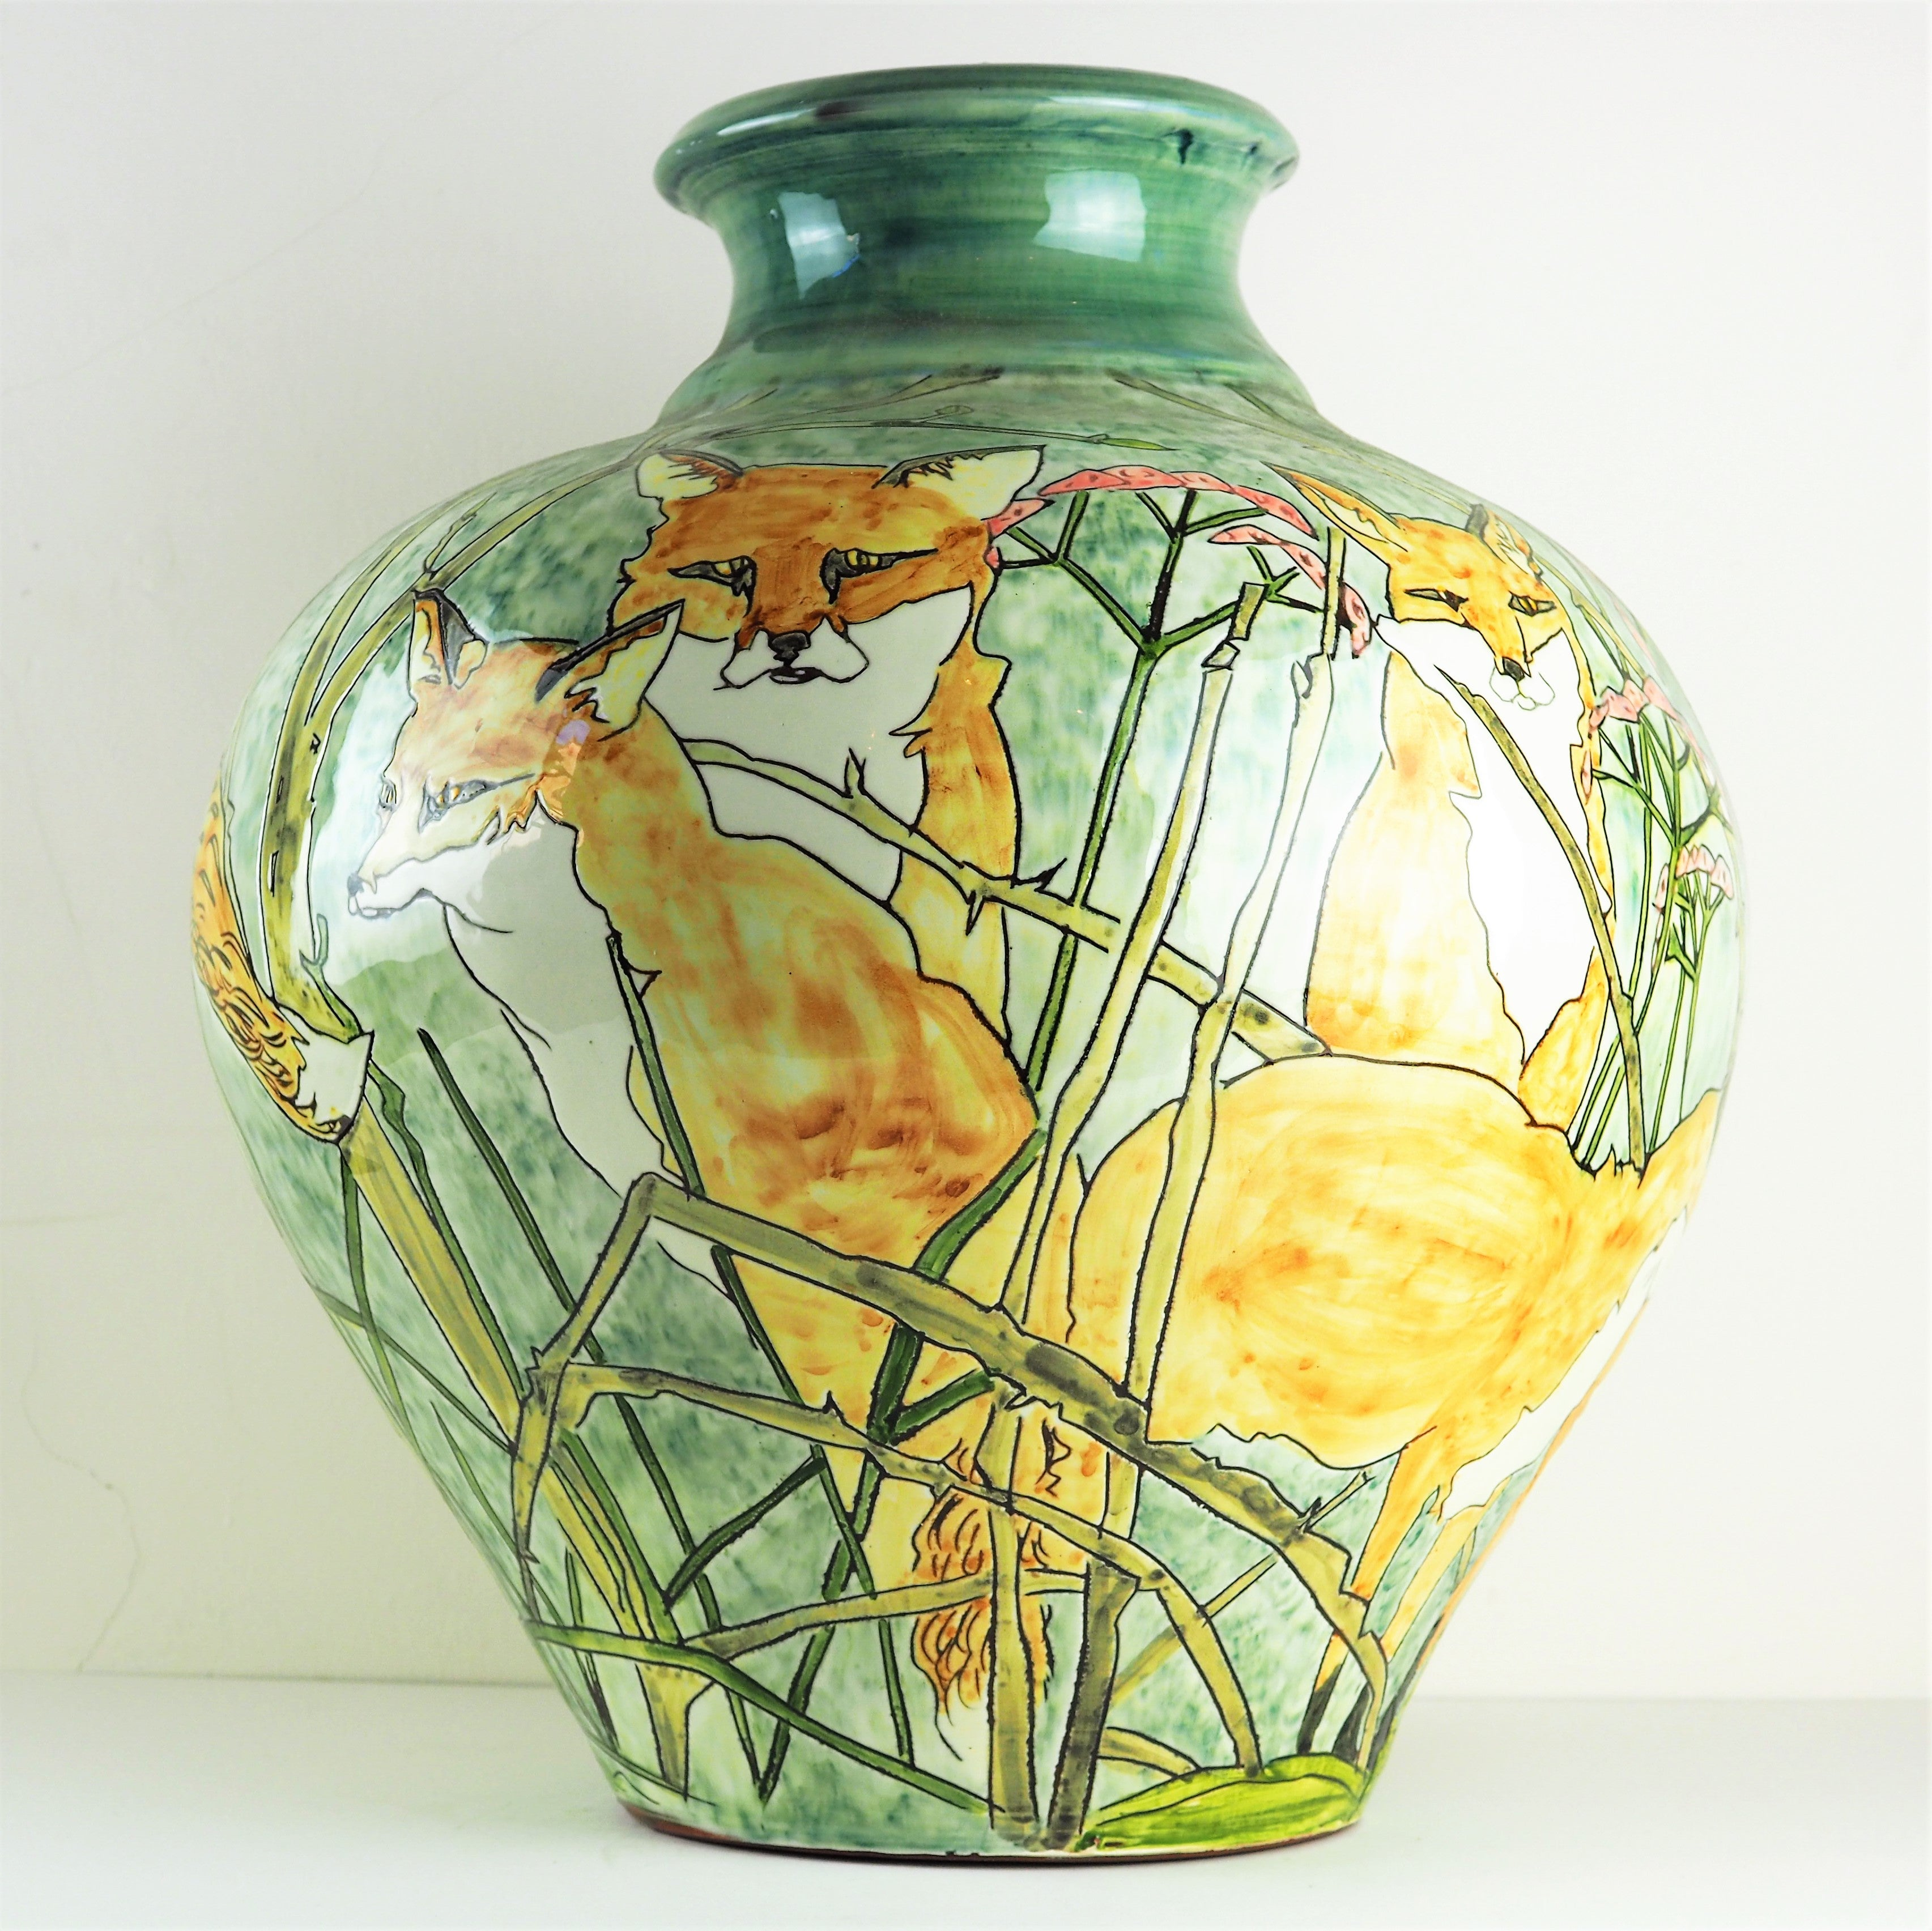 Hale, Jennie – Decorated Earthenware Vase With Foxes | Jennie Hale | Primavera Gallery